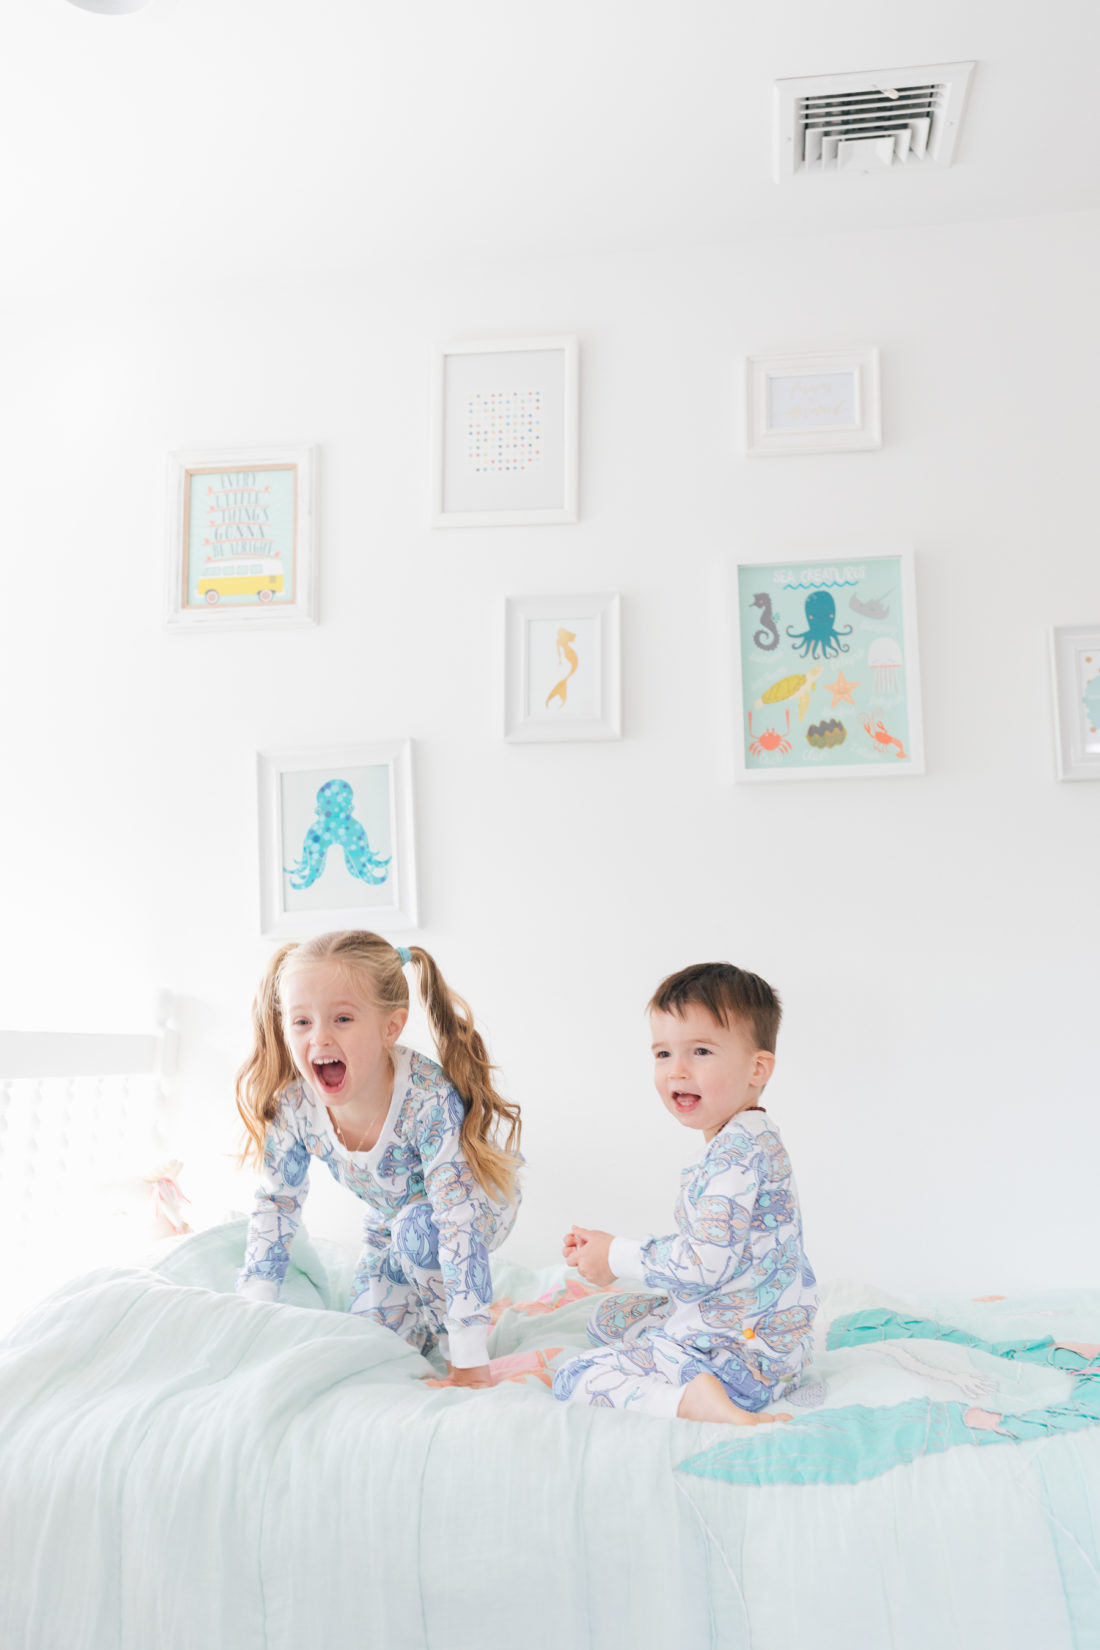 Marlowe and Major martino goof around in matching buggy pajamas from the Happily Eva After x Masala Baby capsule collection